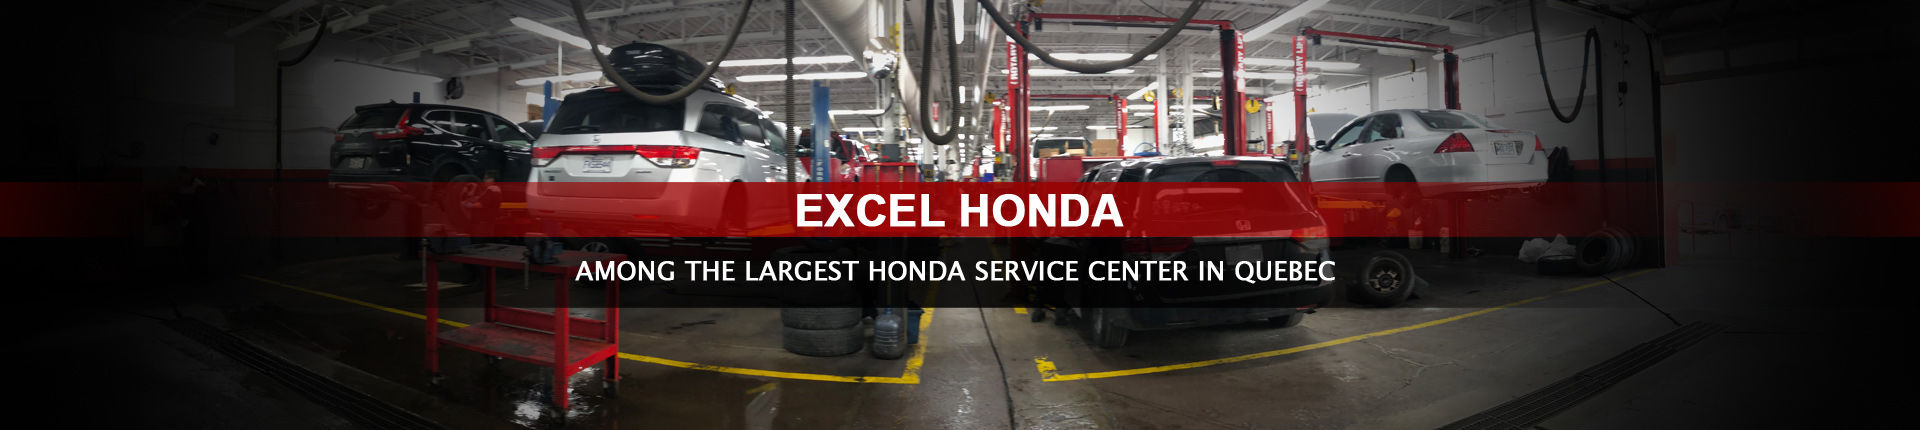 Among the largest Honda Service Center in Quebec